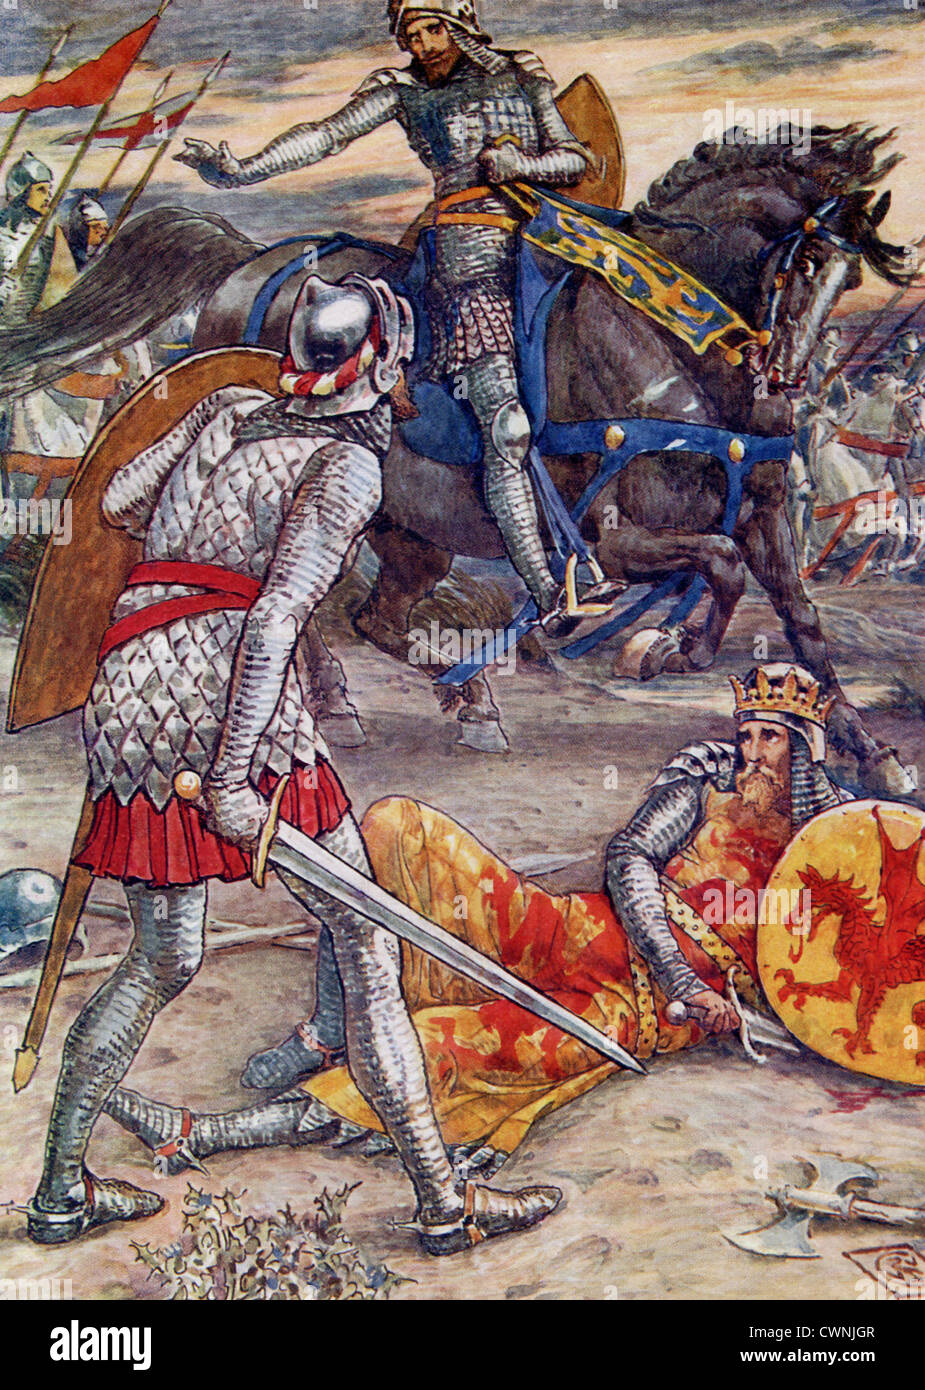 Sir Bors knocked Arthur from his horse and was about to slay him when Lancelot, even though he allies with Bors, - Stock Image